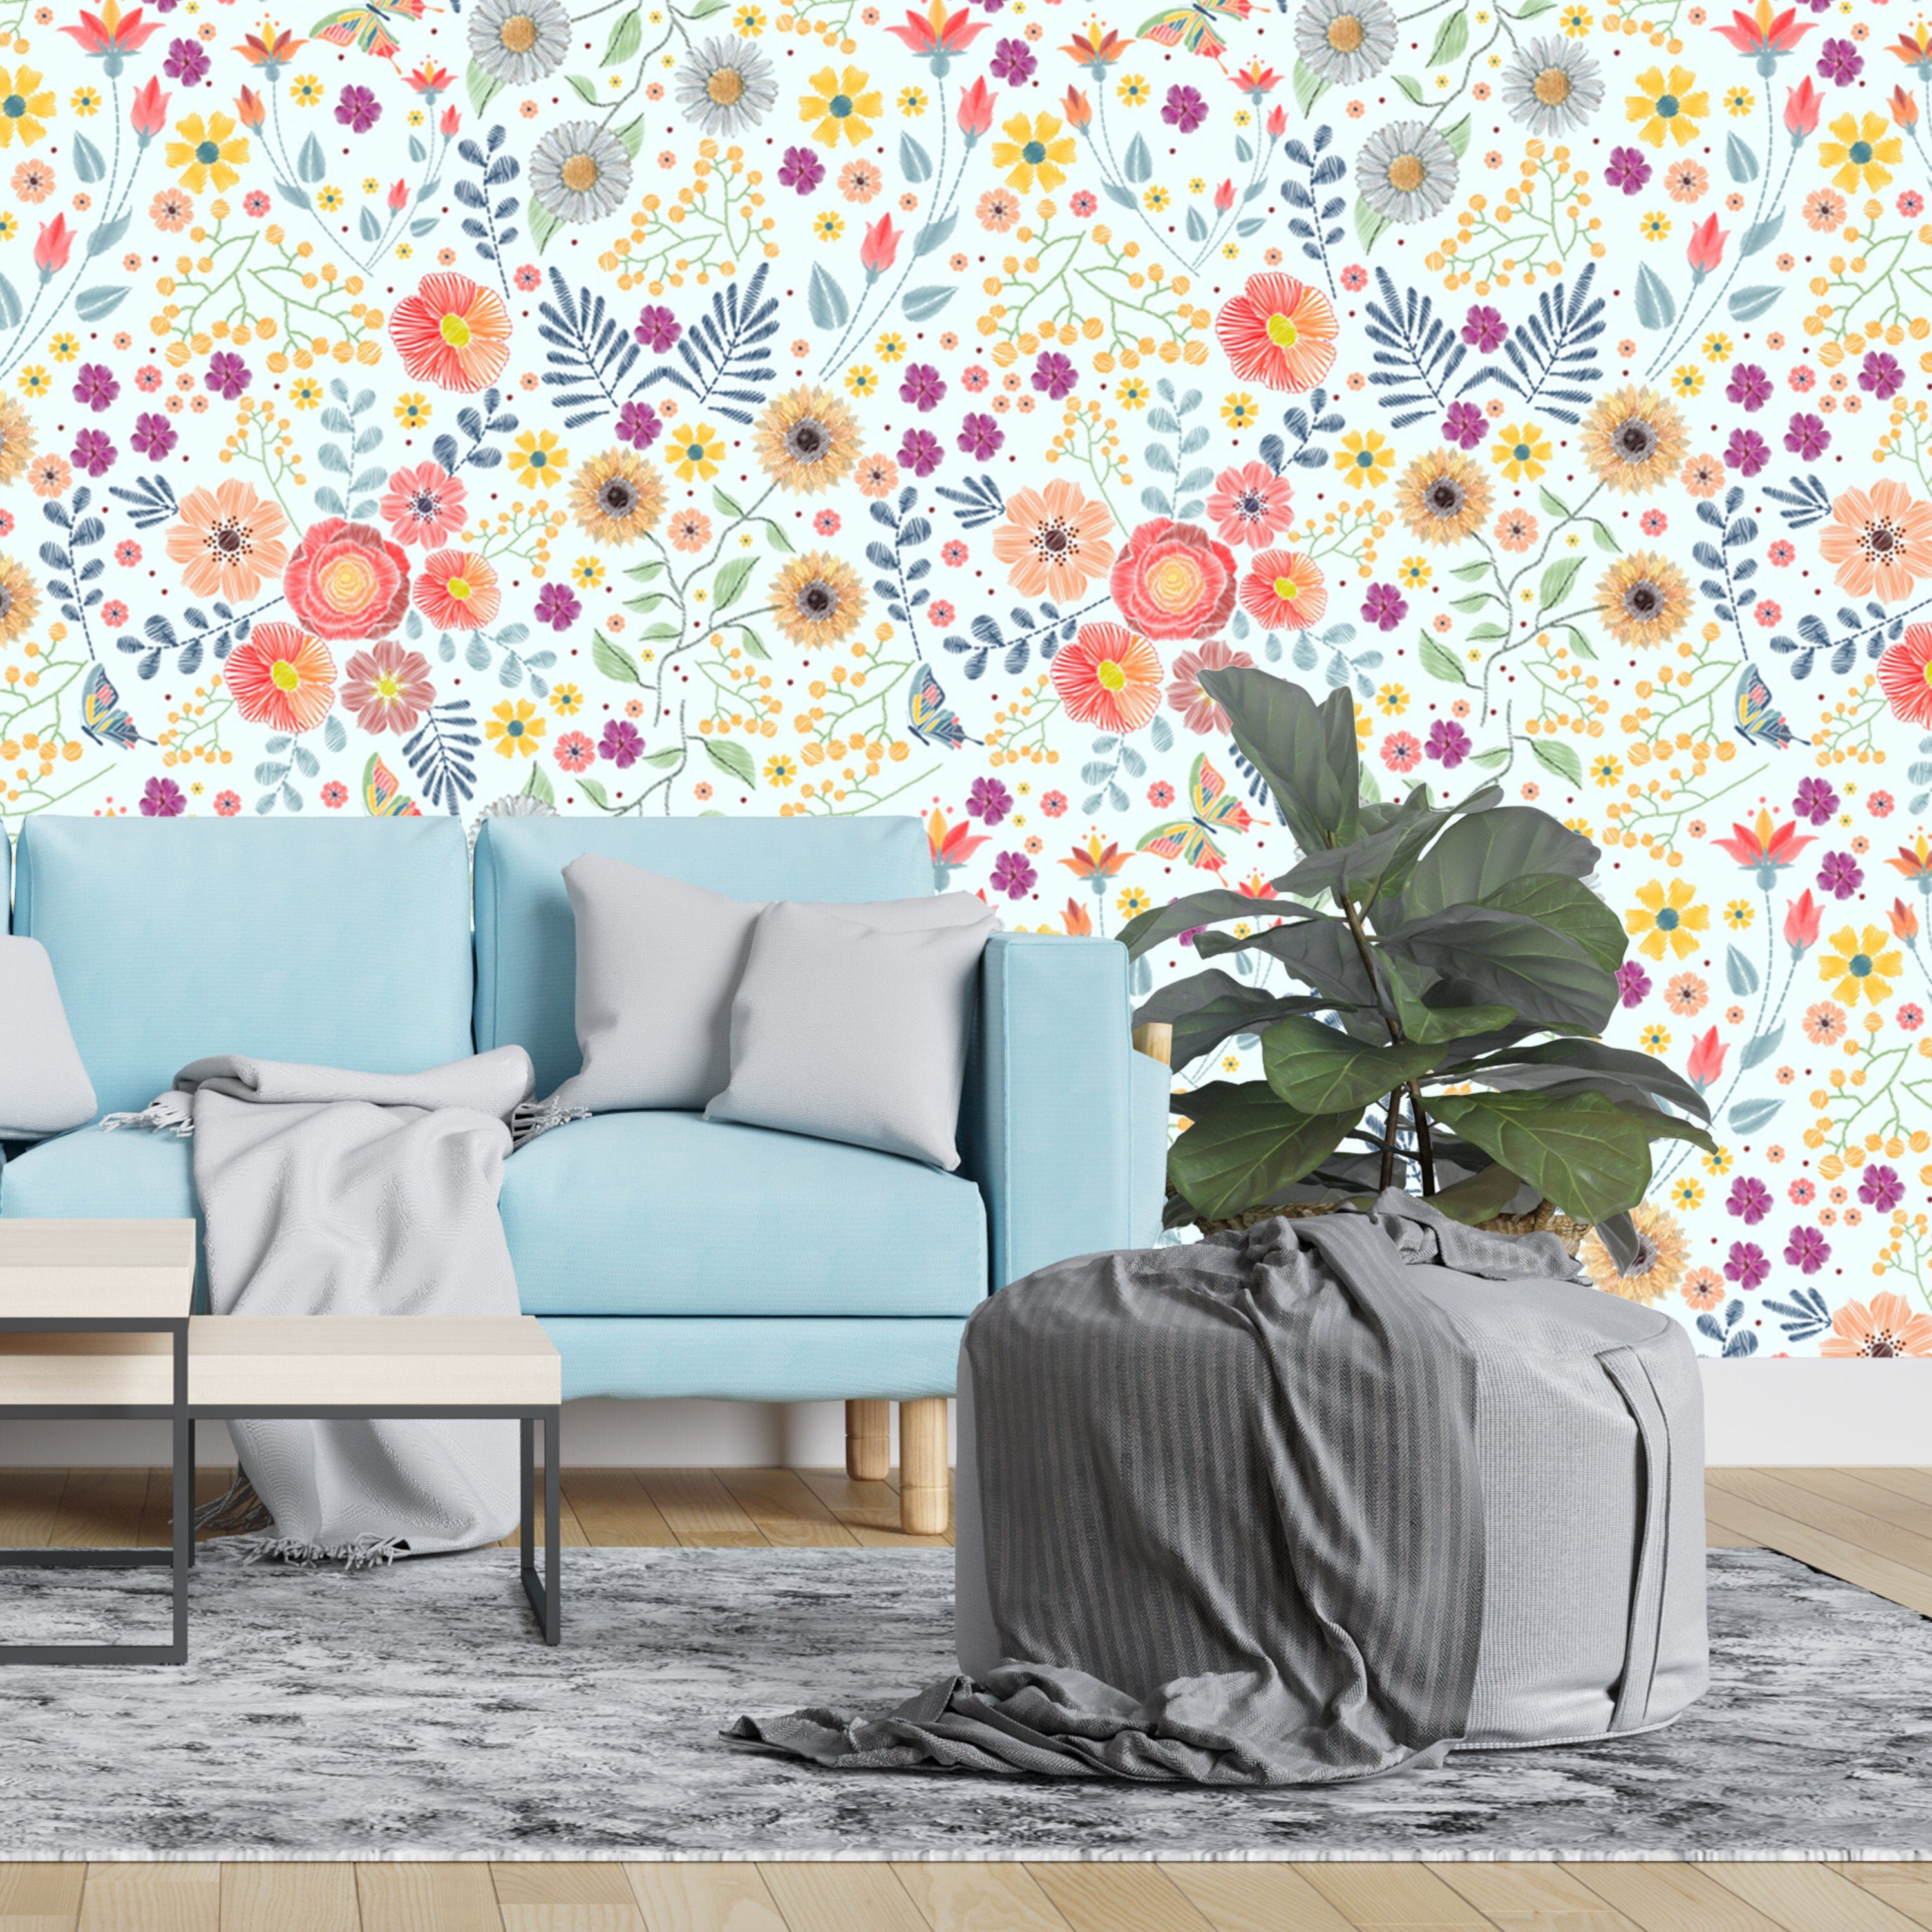 Removable Wallpaper Stitch Wild Flowers and Butterflies